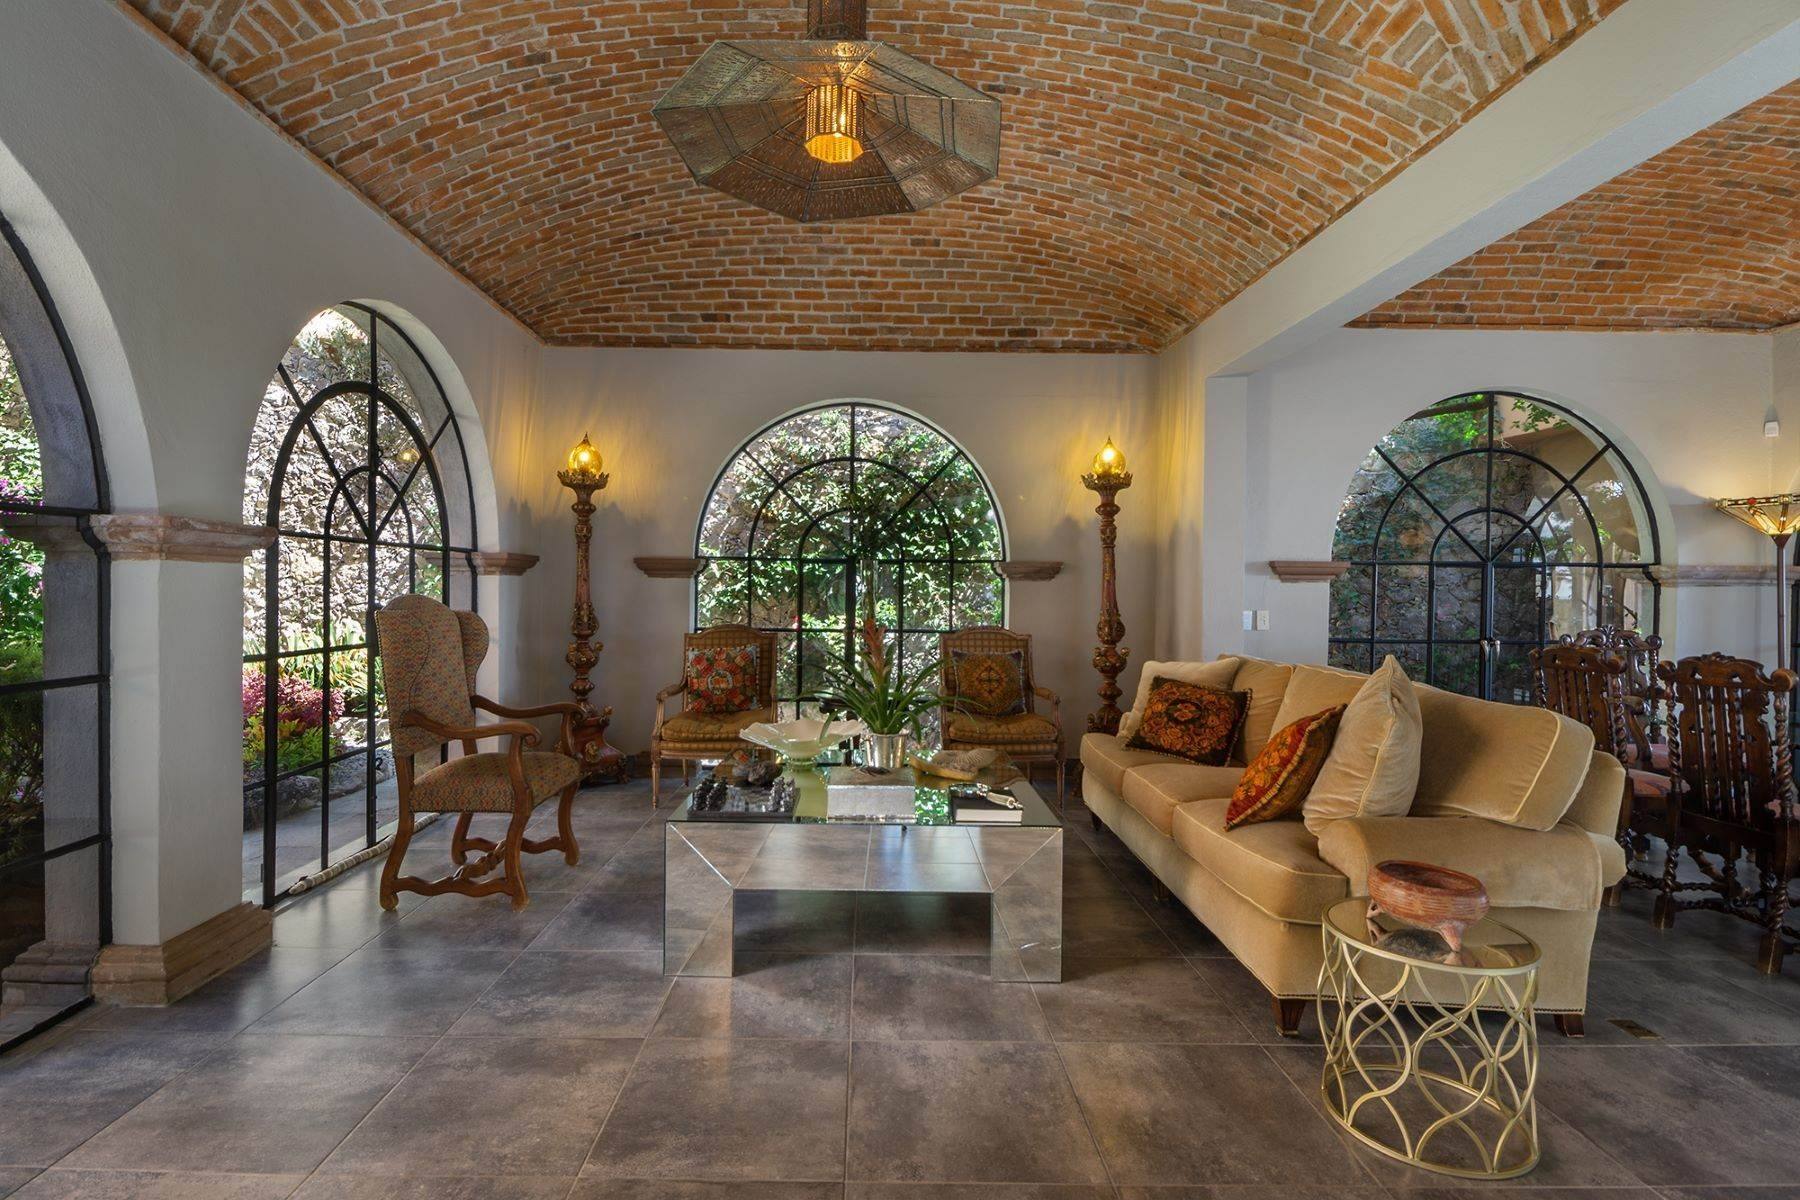 4. Single Family Homes for Sale at Casa Alegre Montitlan San Miguel De Allende, Guanajuato 37720 Mexico